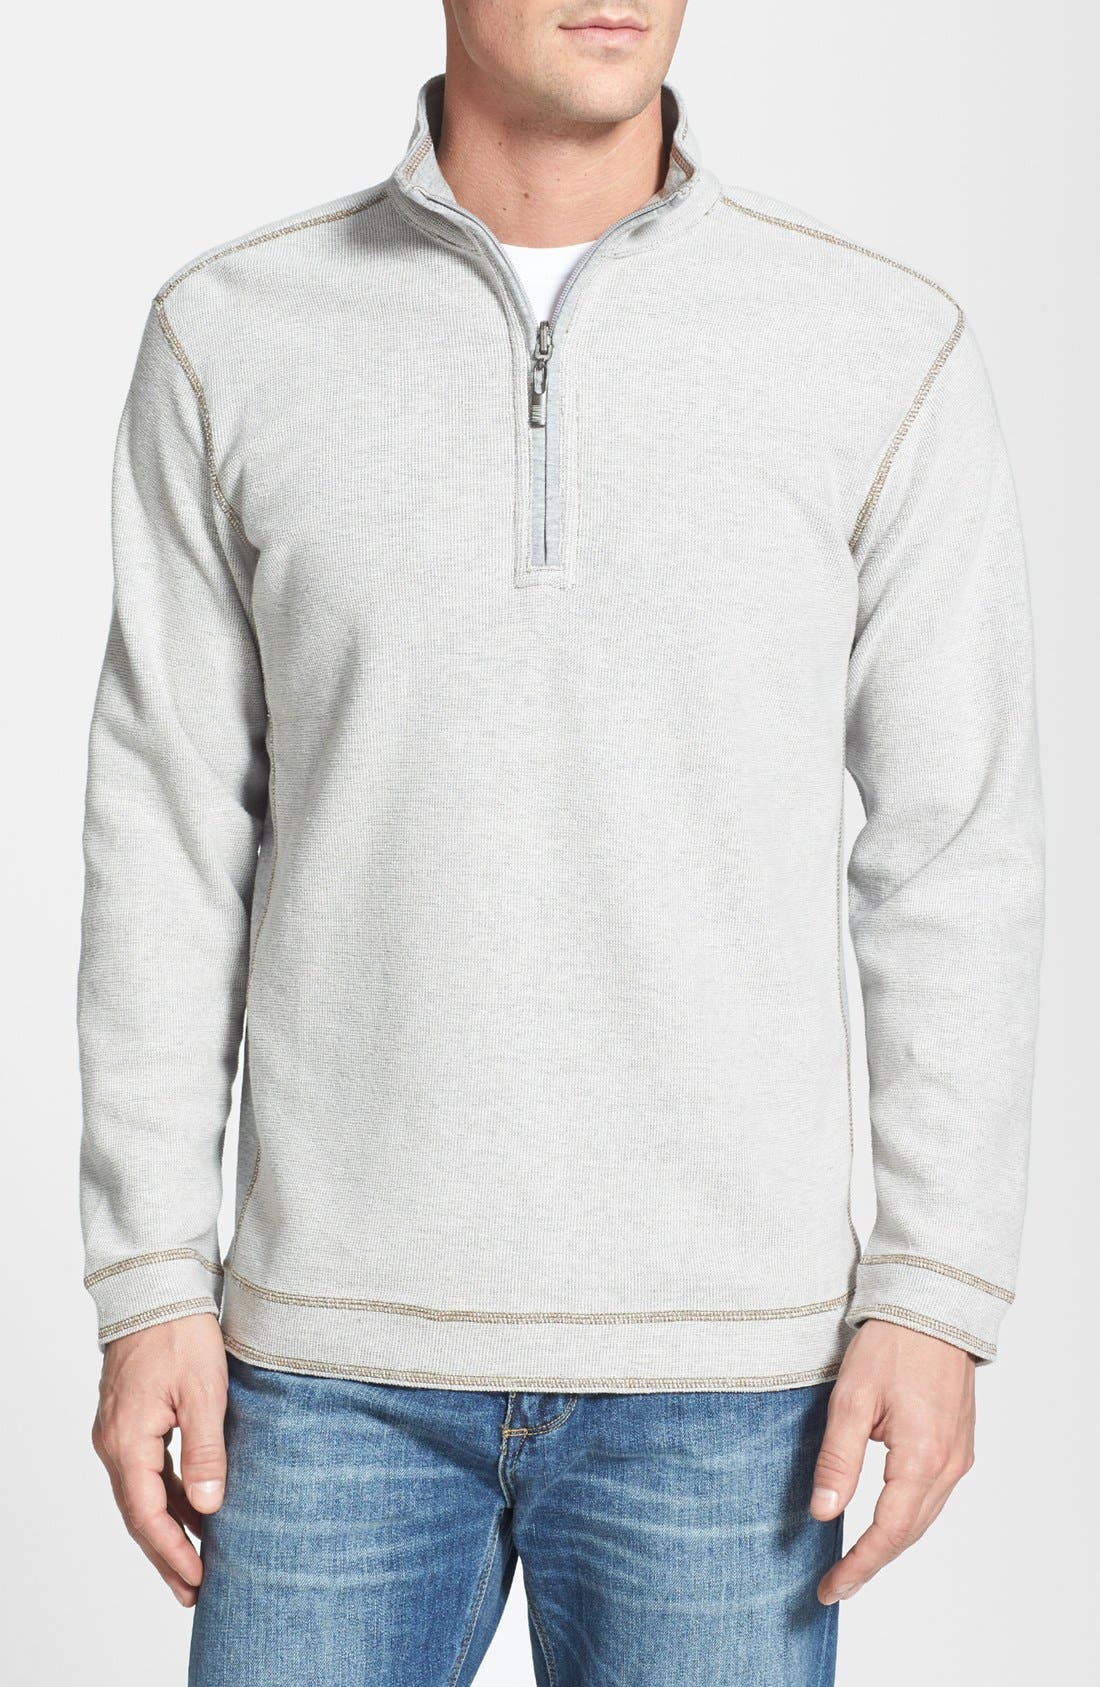 Alternate Image 1 Selected - Tommy Bahama Denim 'Grand Isles' Reversible Half Zip Sweatshirt